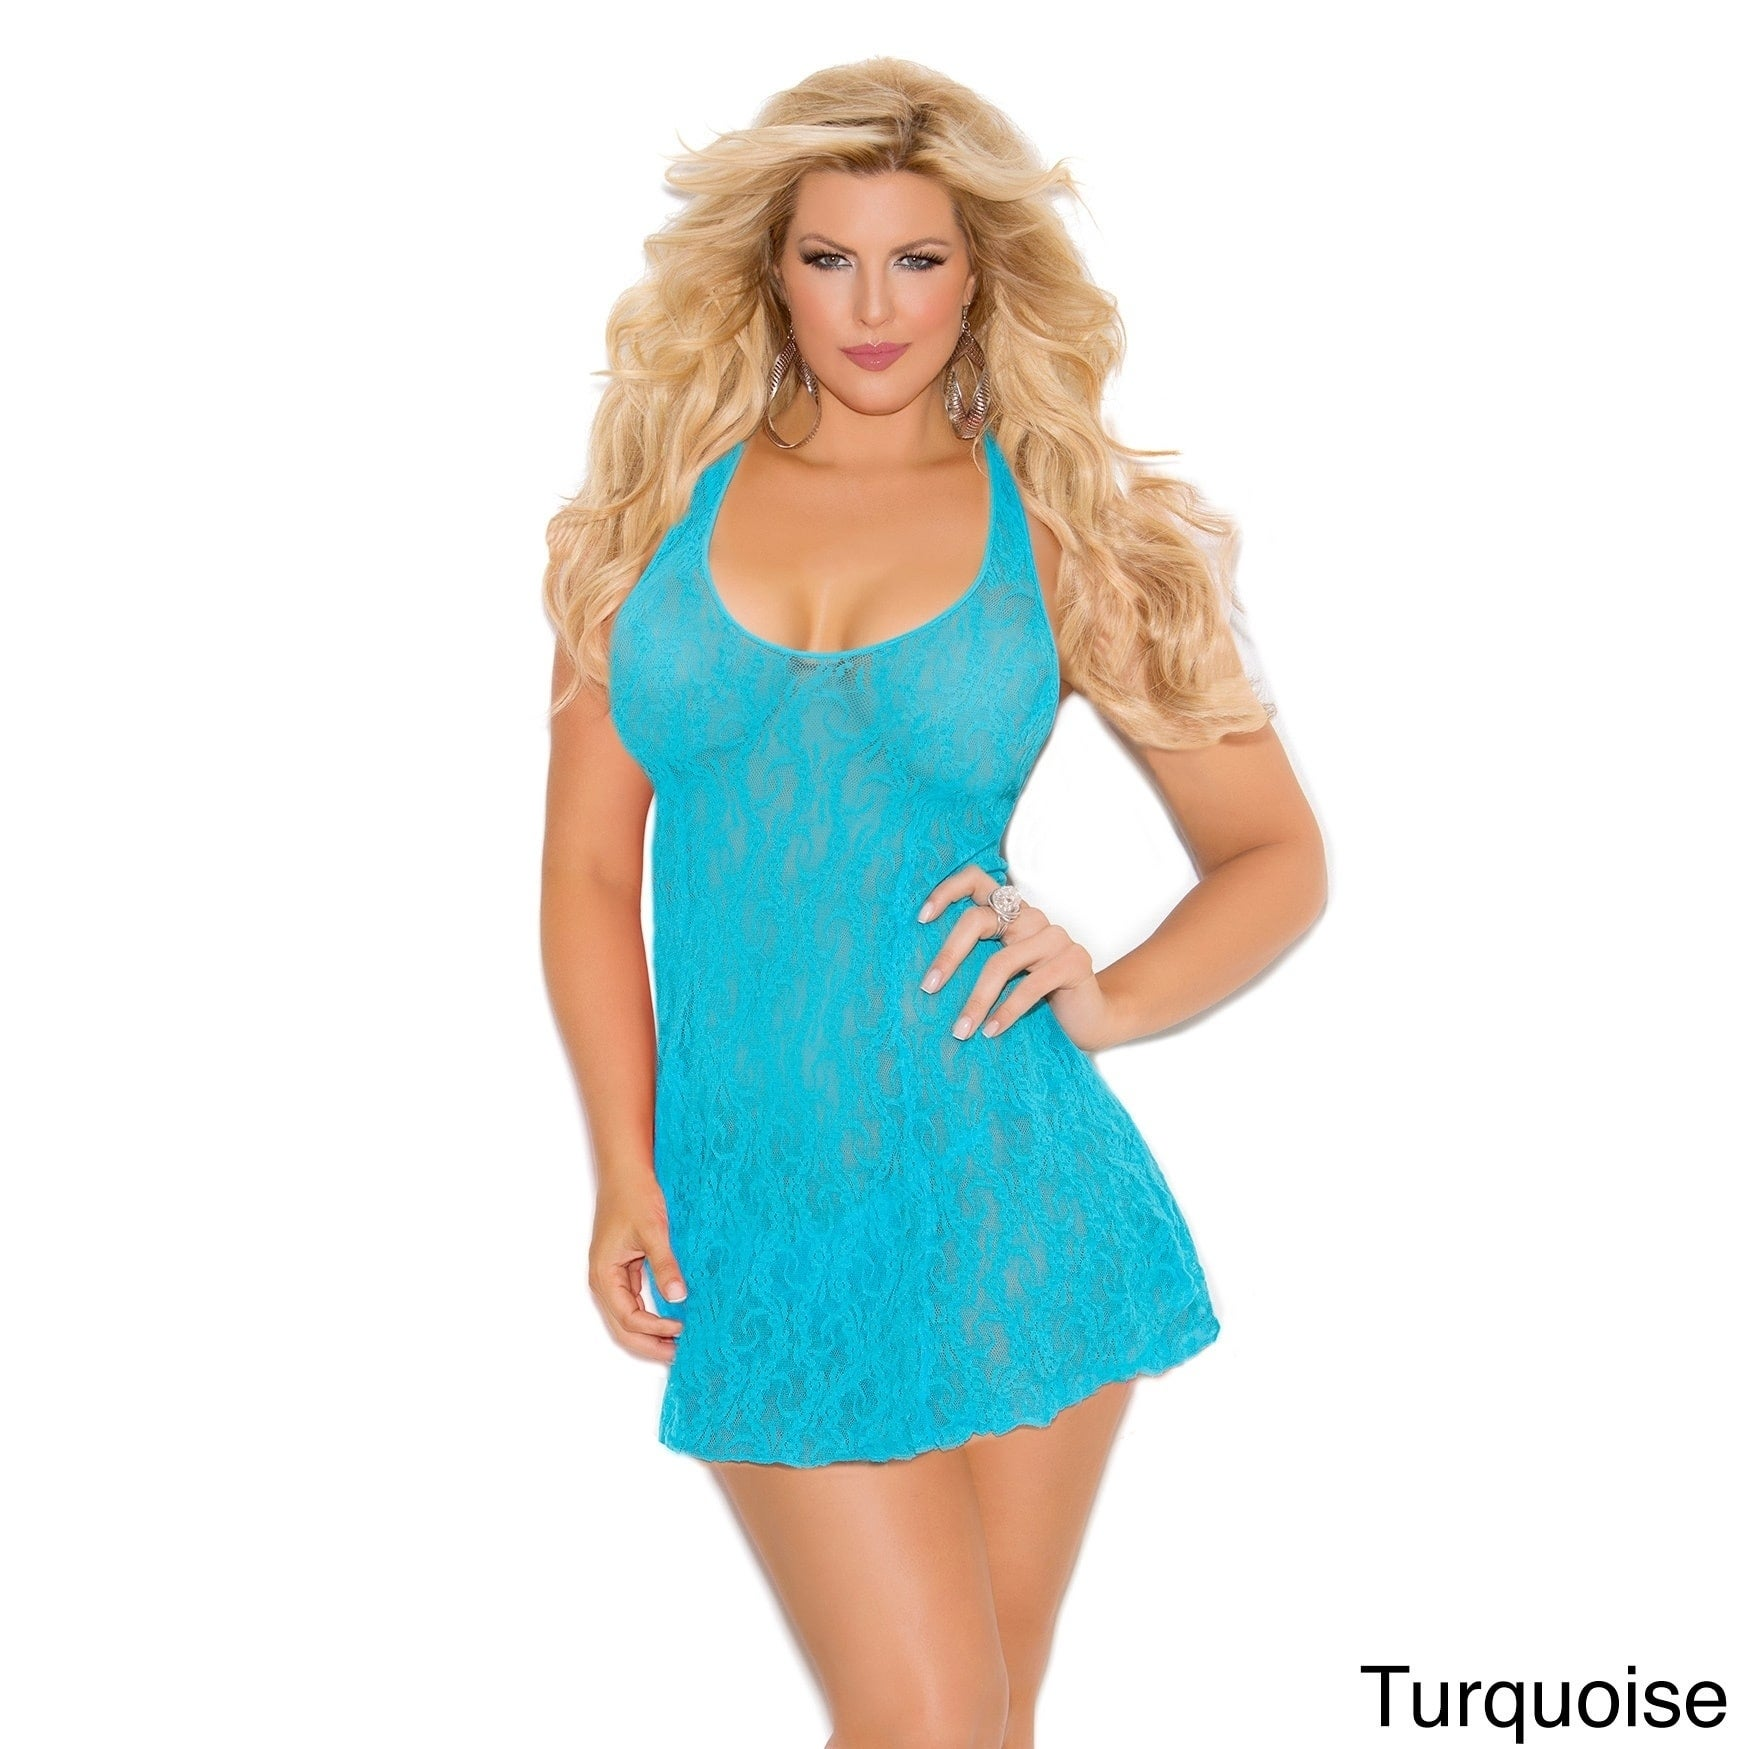 8e624fa7b88f Shop Elegant Moments Women's Plus Size Lace Halter Mini Dress in Queen Size.  - Free Shipping On Orders Over $45 - Overstock - 11193316